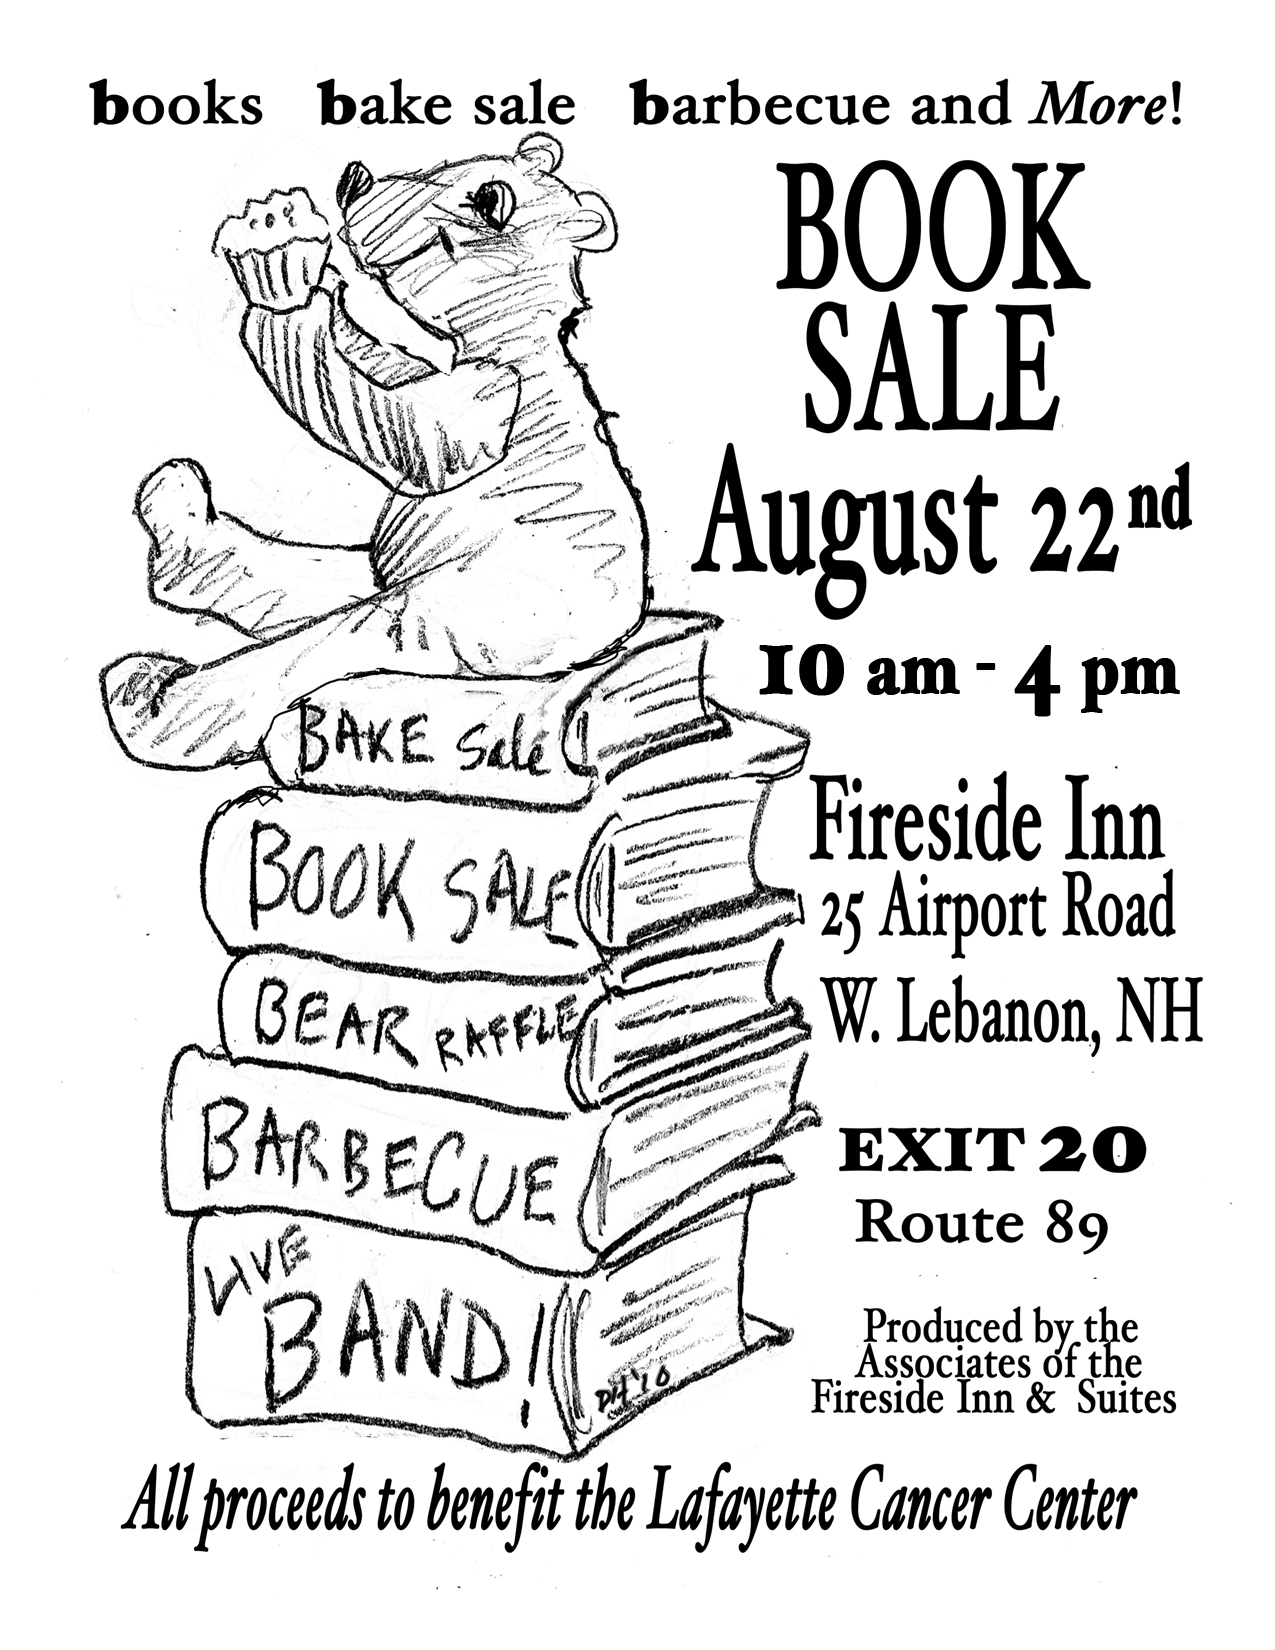 Book Sale at the Fireside Inn